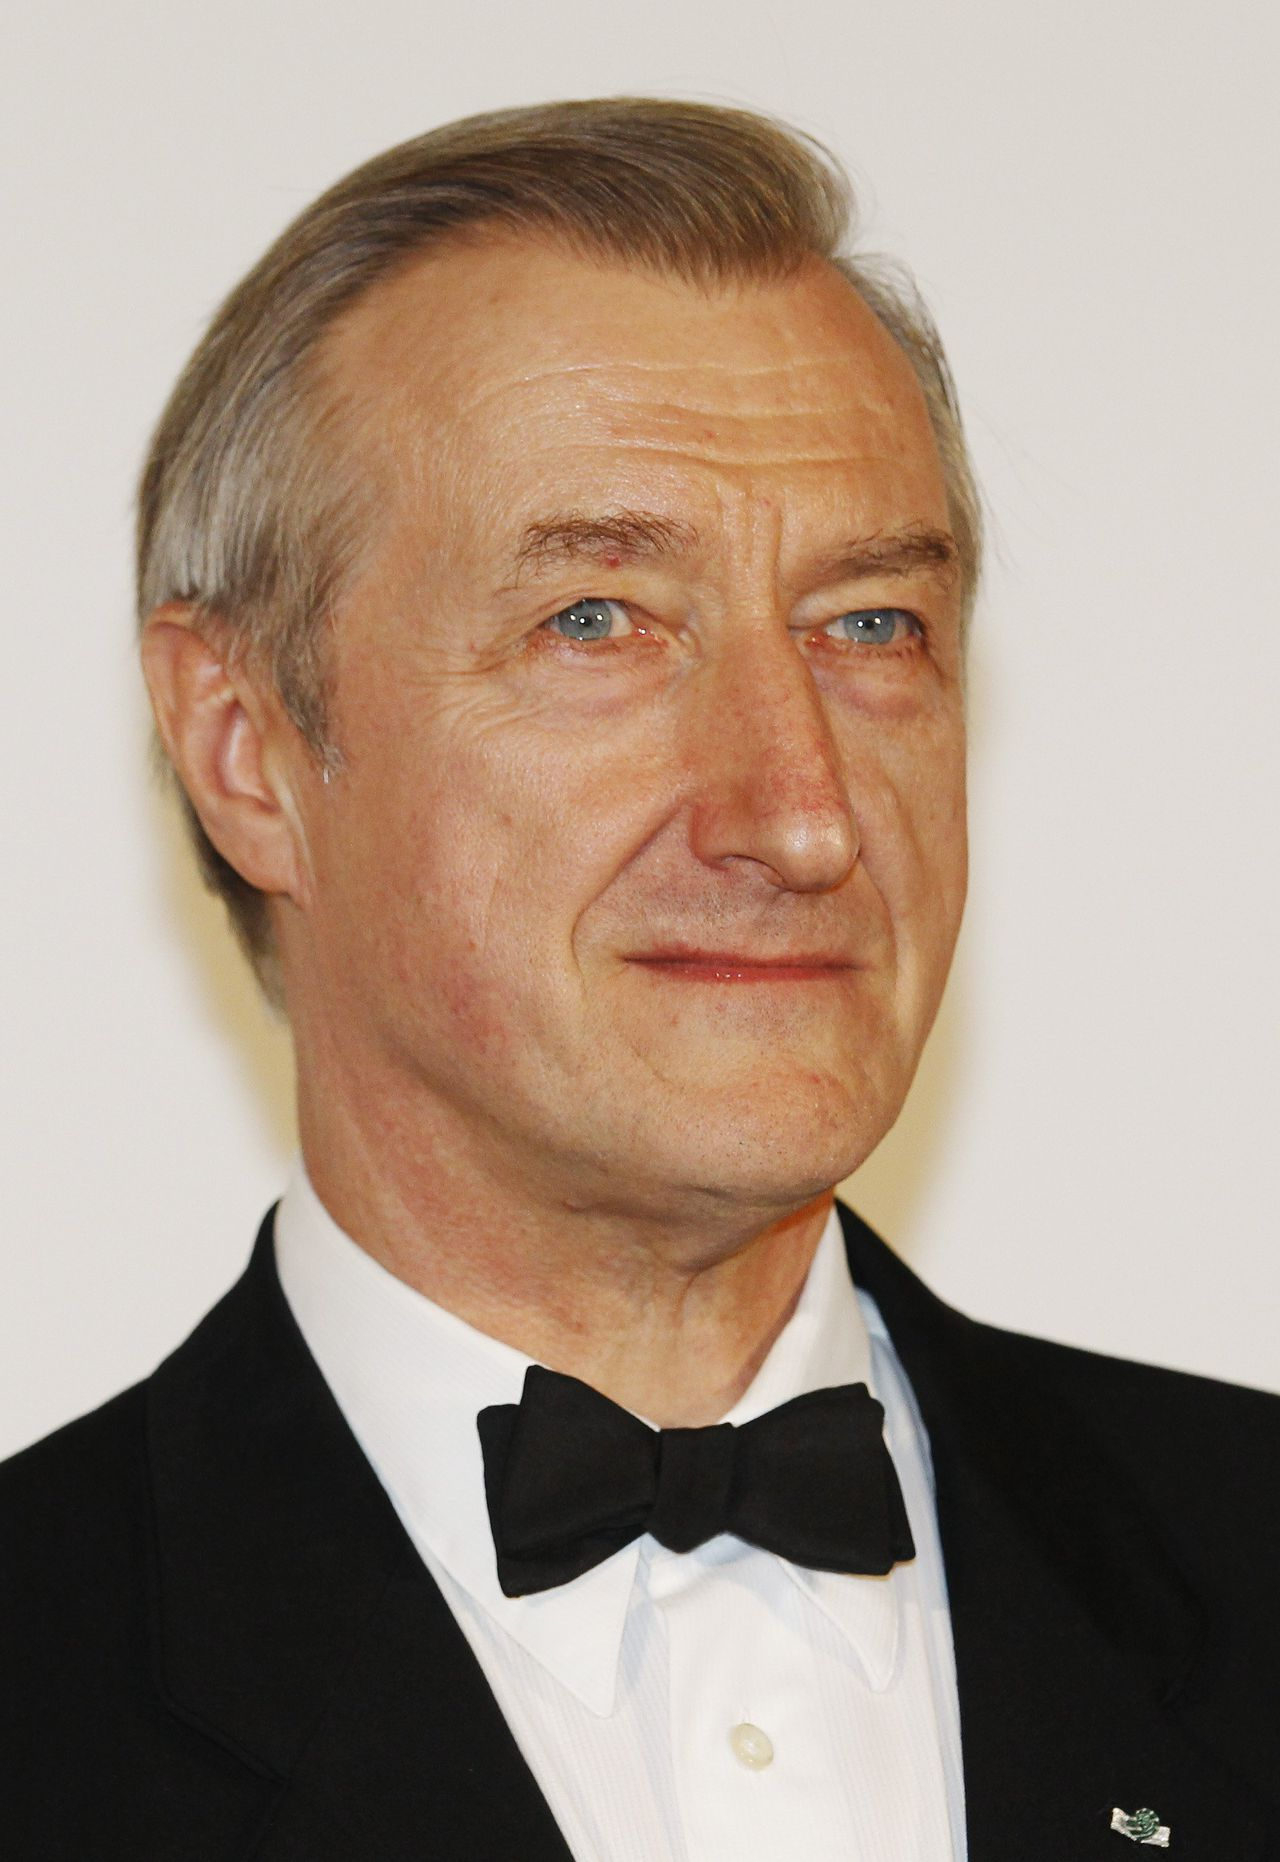 """British author Julian Barnes poses after winning the 2011 Man Booker Prize for Fiction for his book """"The Sense of an Ending"""" at the Guildhall in London October 18, 2011. English author and bookmakers' favourite Barnes won the Man Booker Prize for fiction on Tuesday, despite once dismissing the coveted award as """"posh bingo"""". REUTERS/Luke MacGregor (BRITAIN - Tags: ENTERTAINMENT SOCIETY)"""